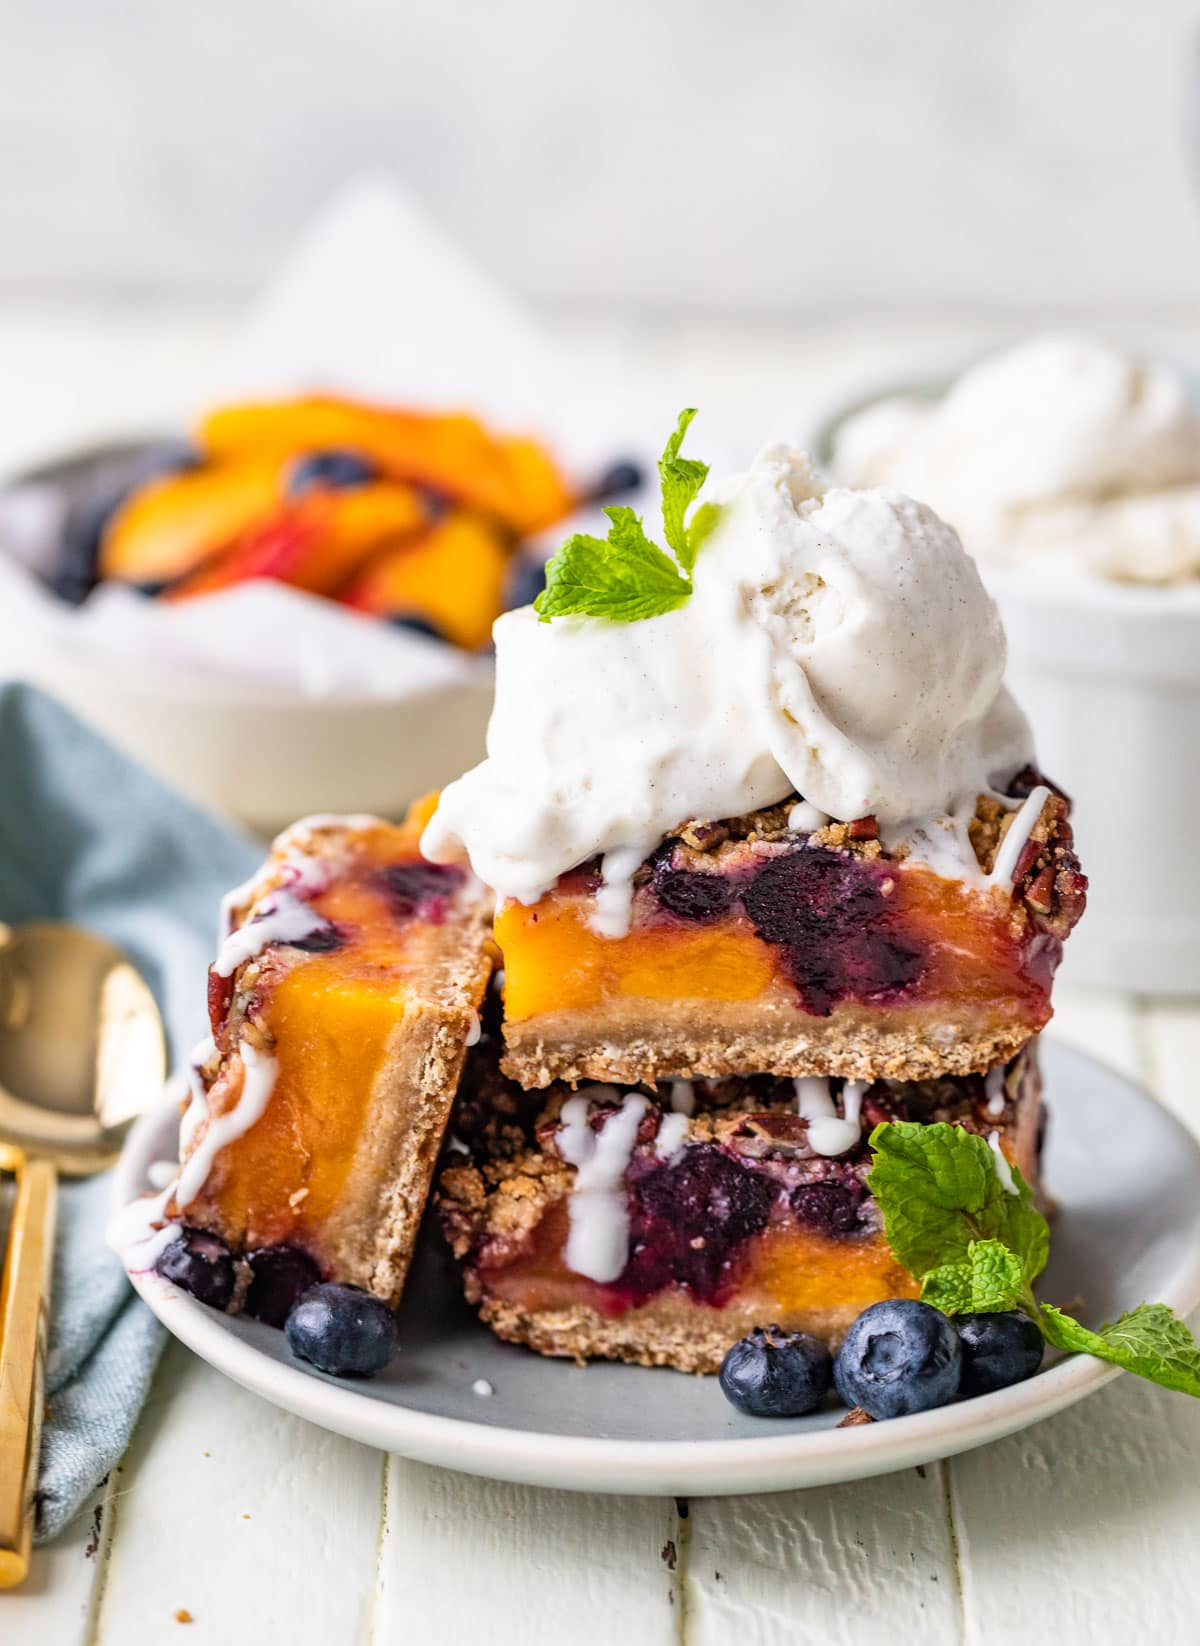 Sweet Summer Fruit Crumble Bars from The Well Plated Cookbook